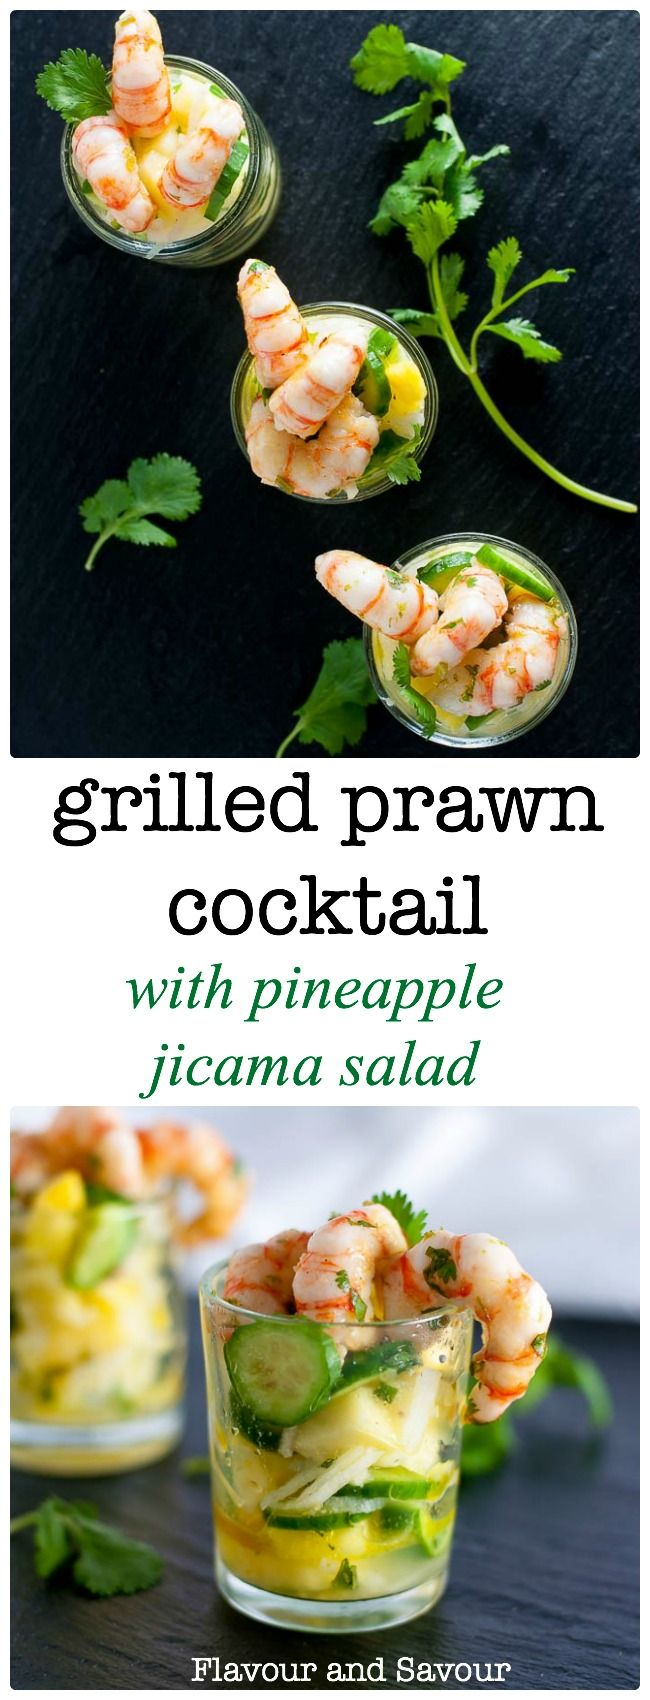 This Grilled Prawn Cocktail with Pineapple Jicama Salad combines juicy pineapple, crisp cucumber and jicama with a tangy cilantro lime dressing. Top with fresh grilled prawns or shrimp for a spectacular mini appetizer. via @enessman